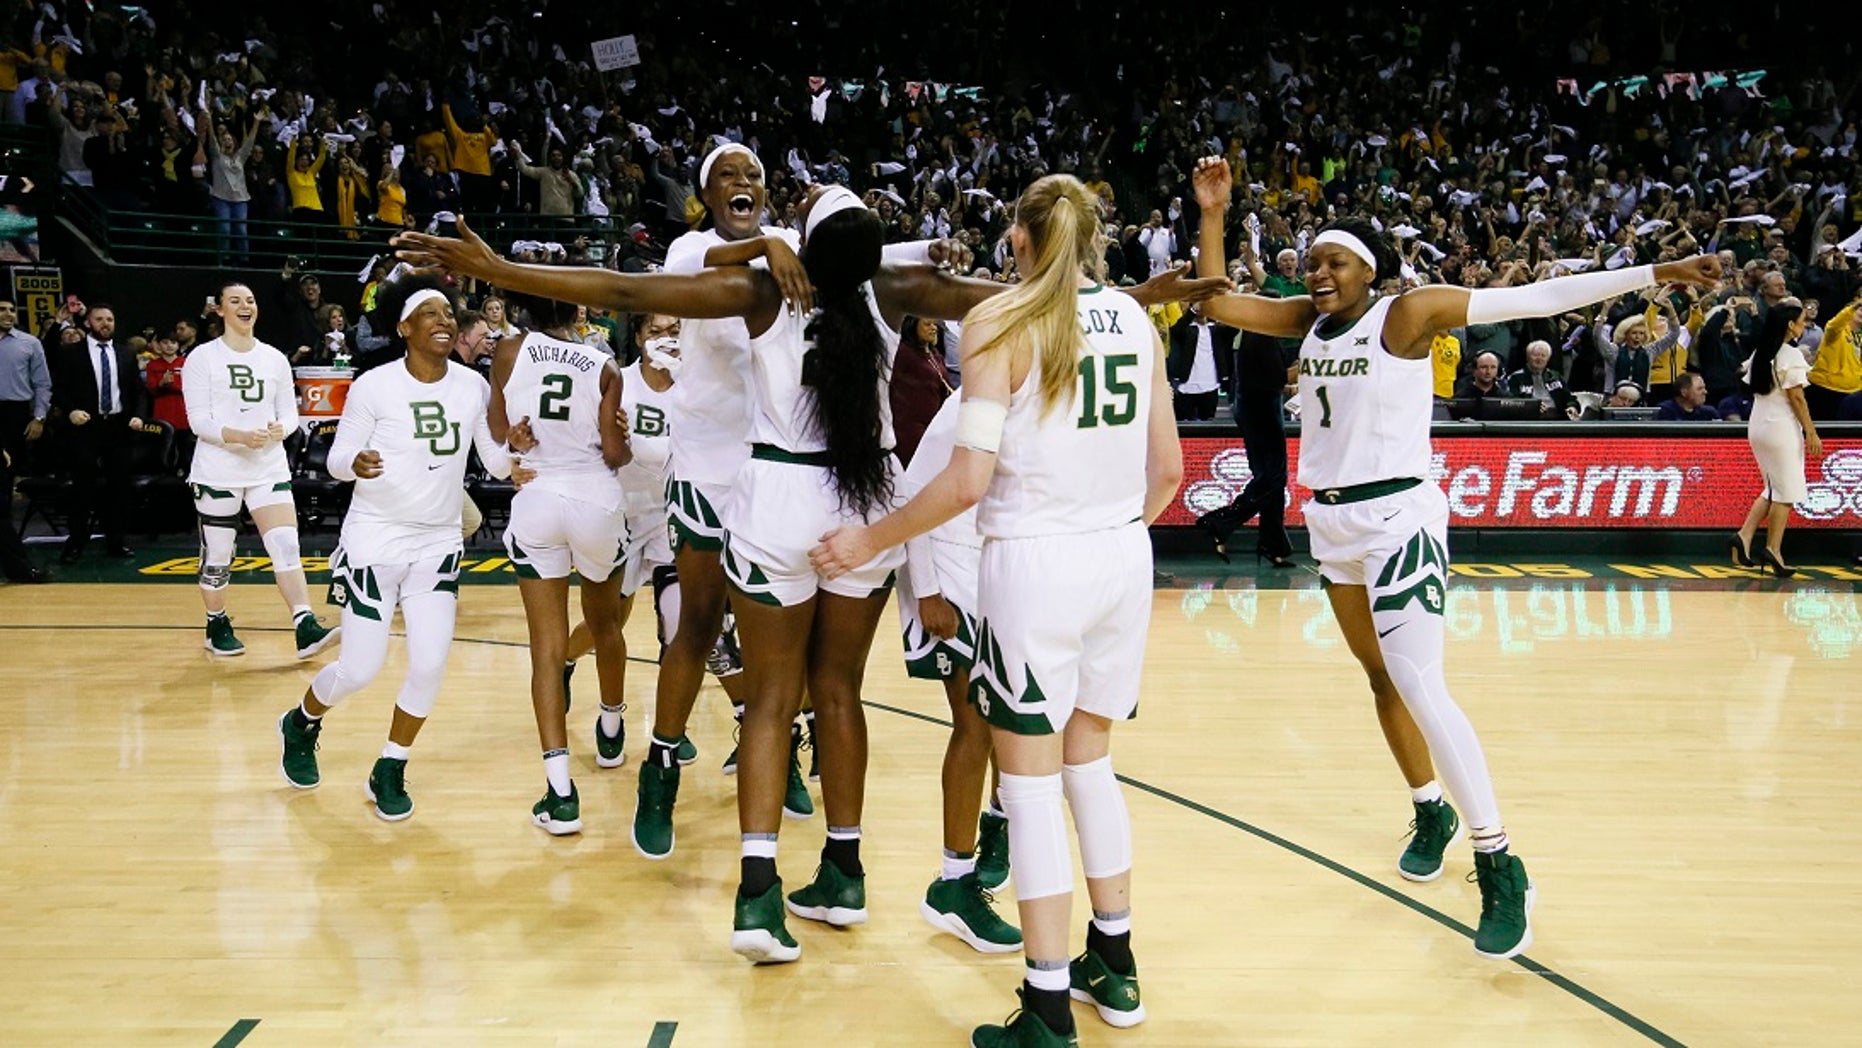 Baylor Defeats UConn to End Absurd 126-Game Regular Season Winning Streak